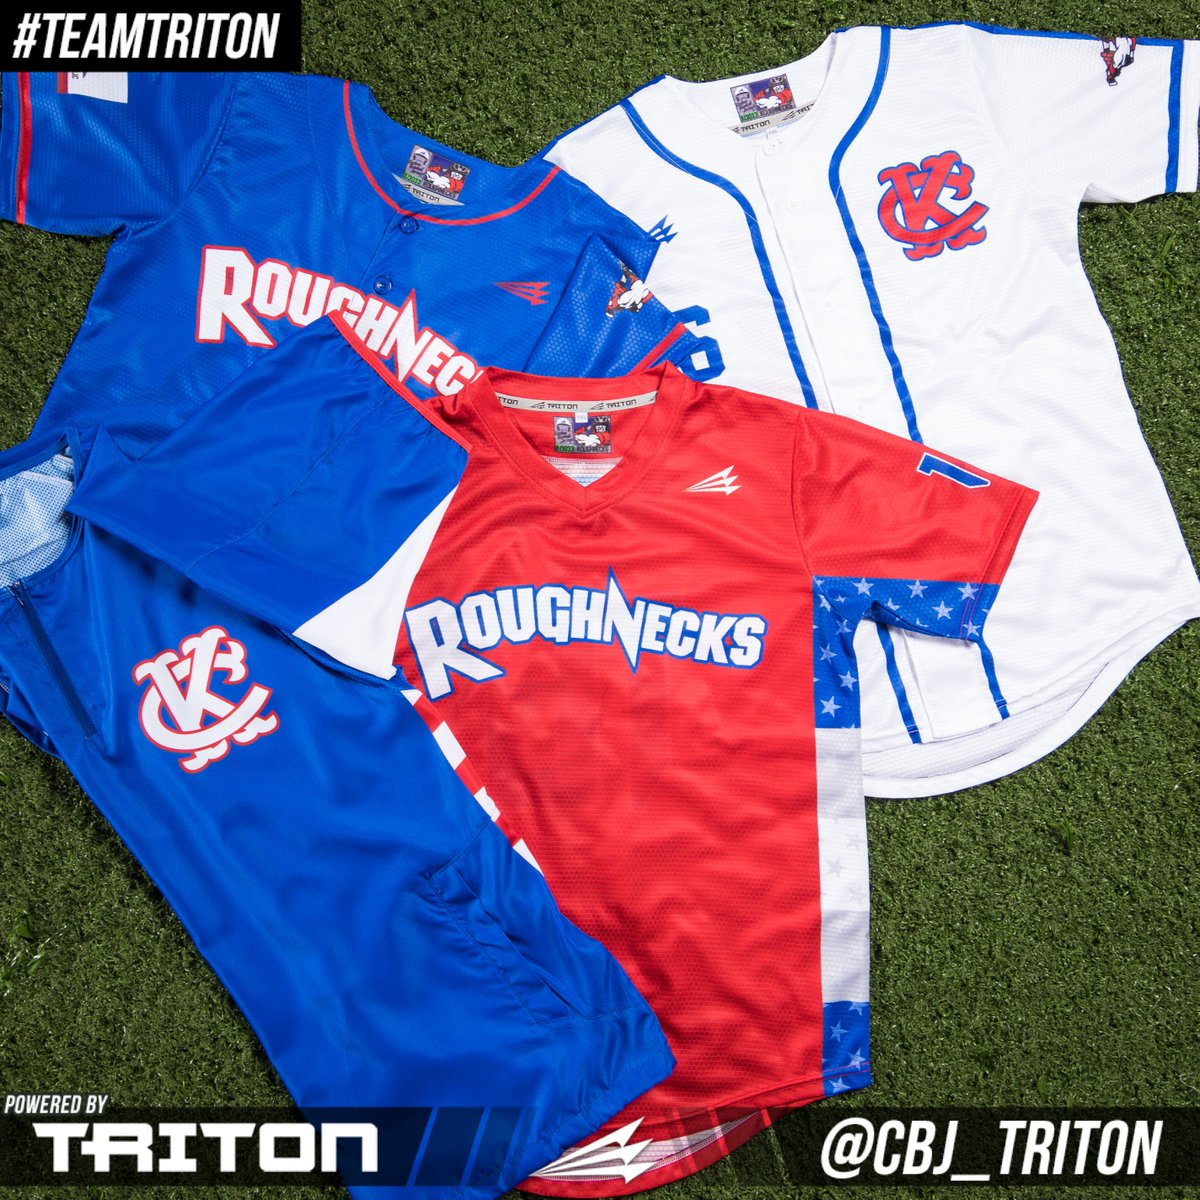 Triton Baseball On Twitter Check Out This Custom Jersey Combo And